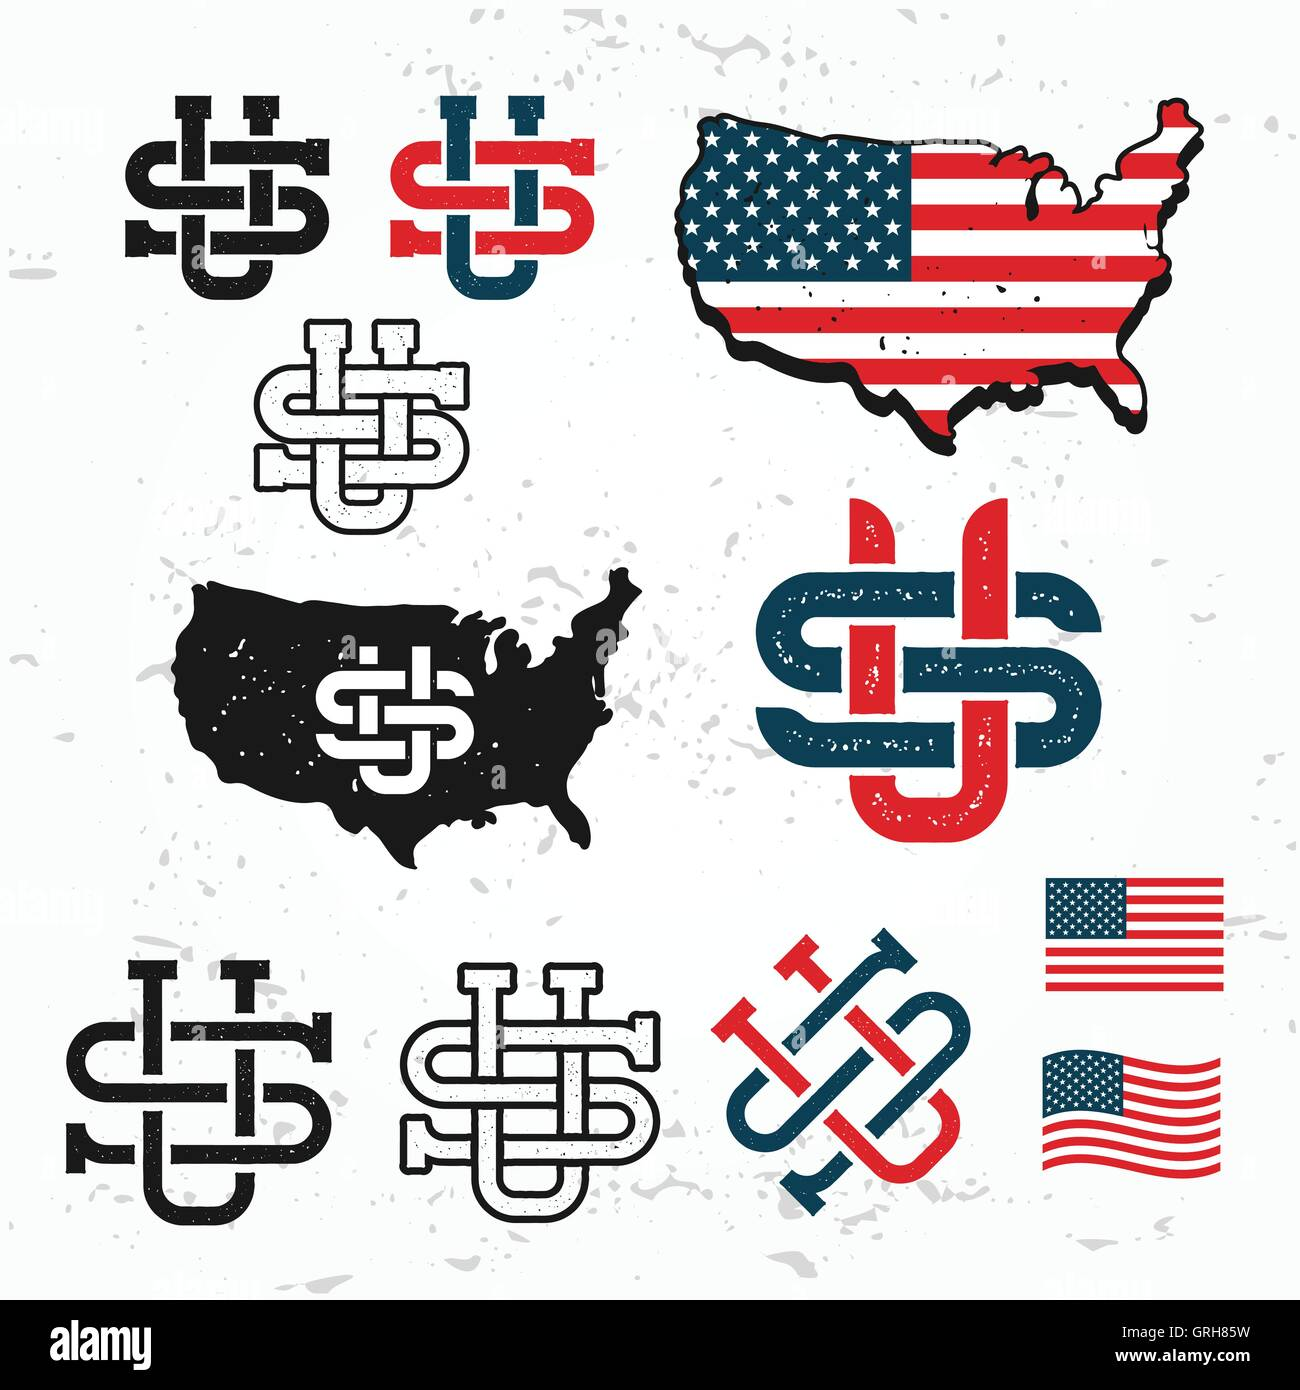 Made in USA monogram vector set Vintage America logo design